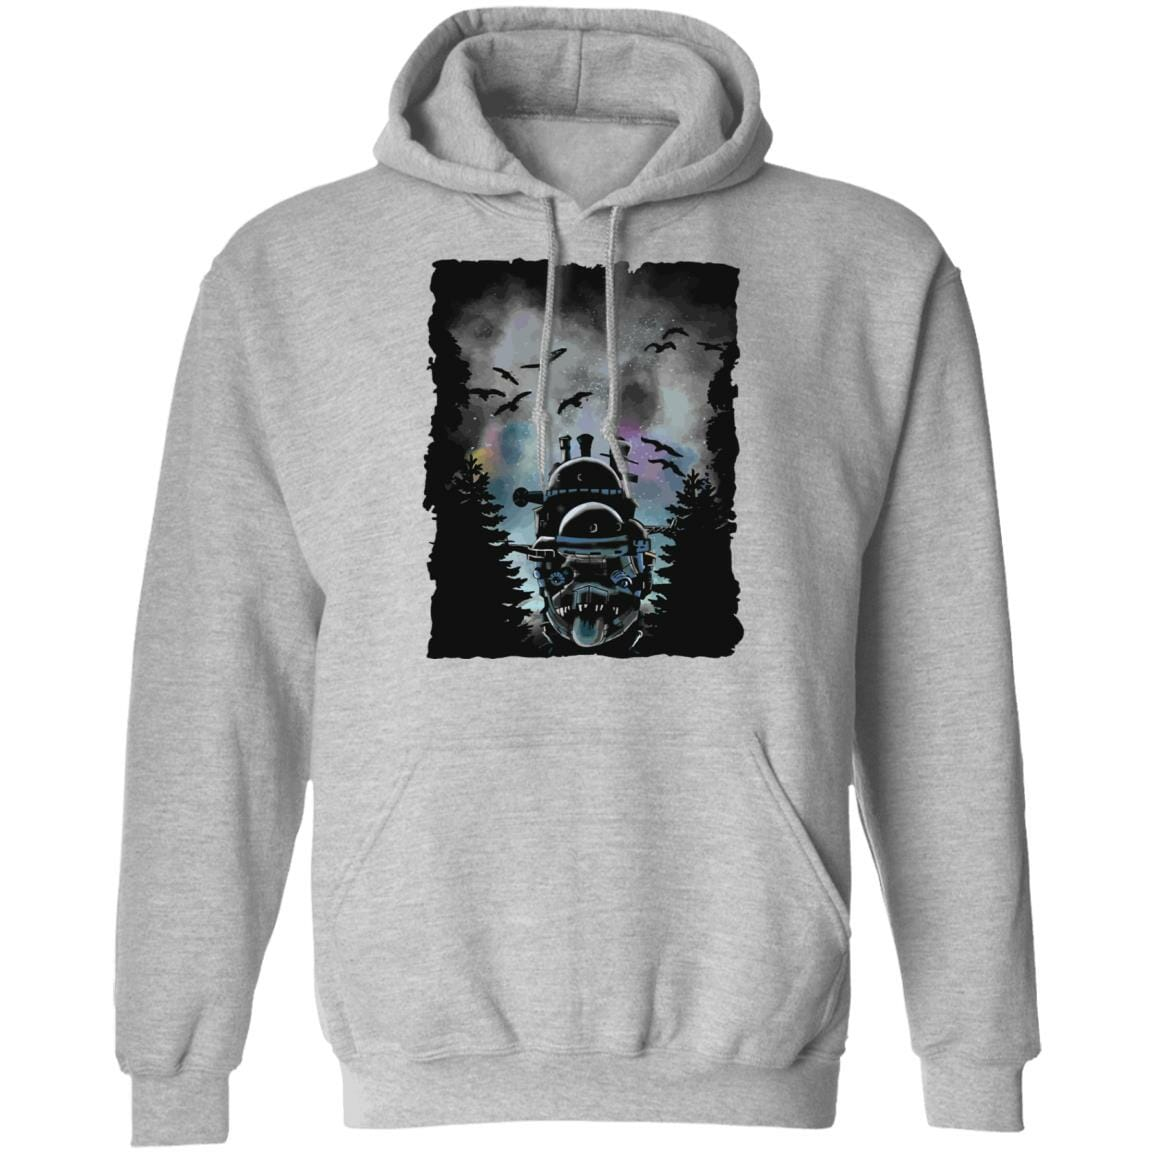 Howl's Moving Castle At Night Hoodie